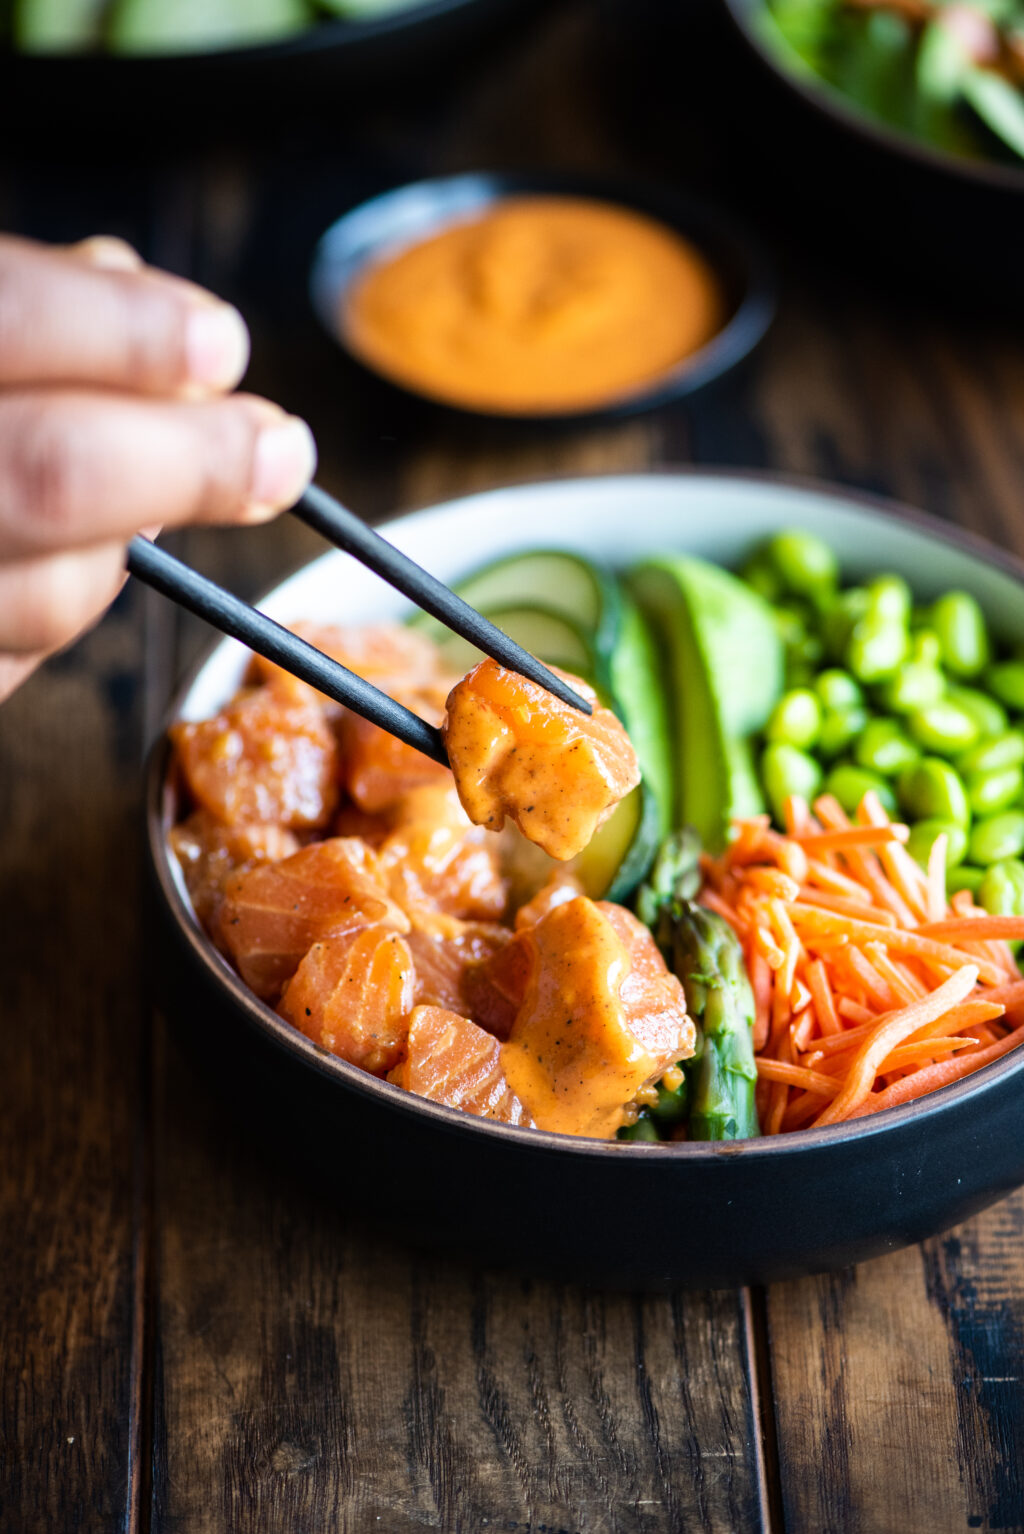 picking up a piece of salmon from the poke bowl